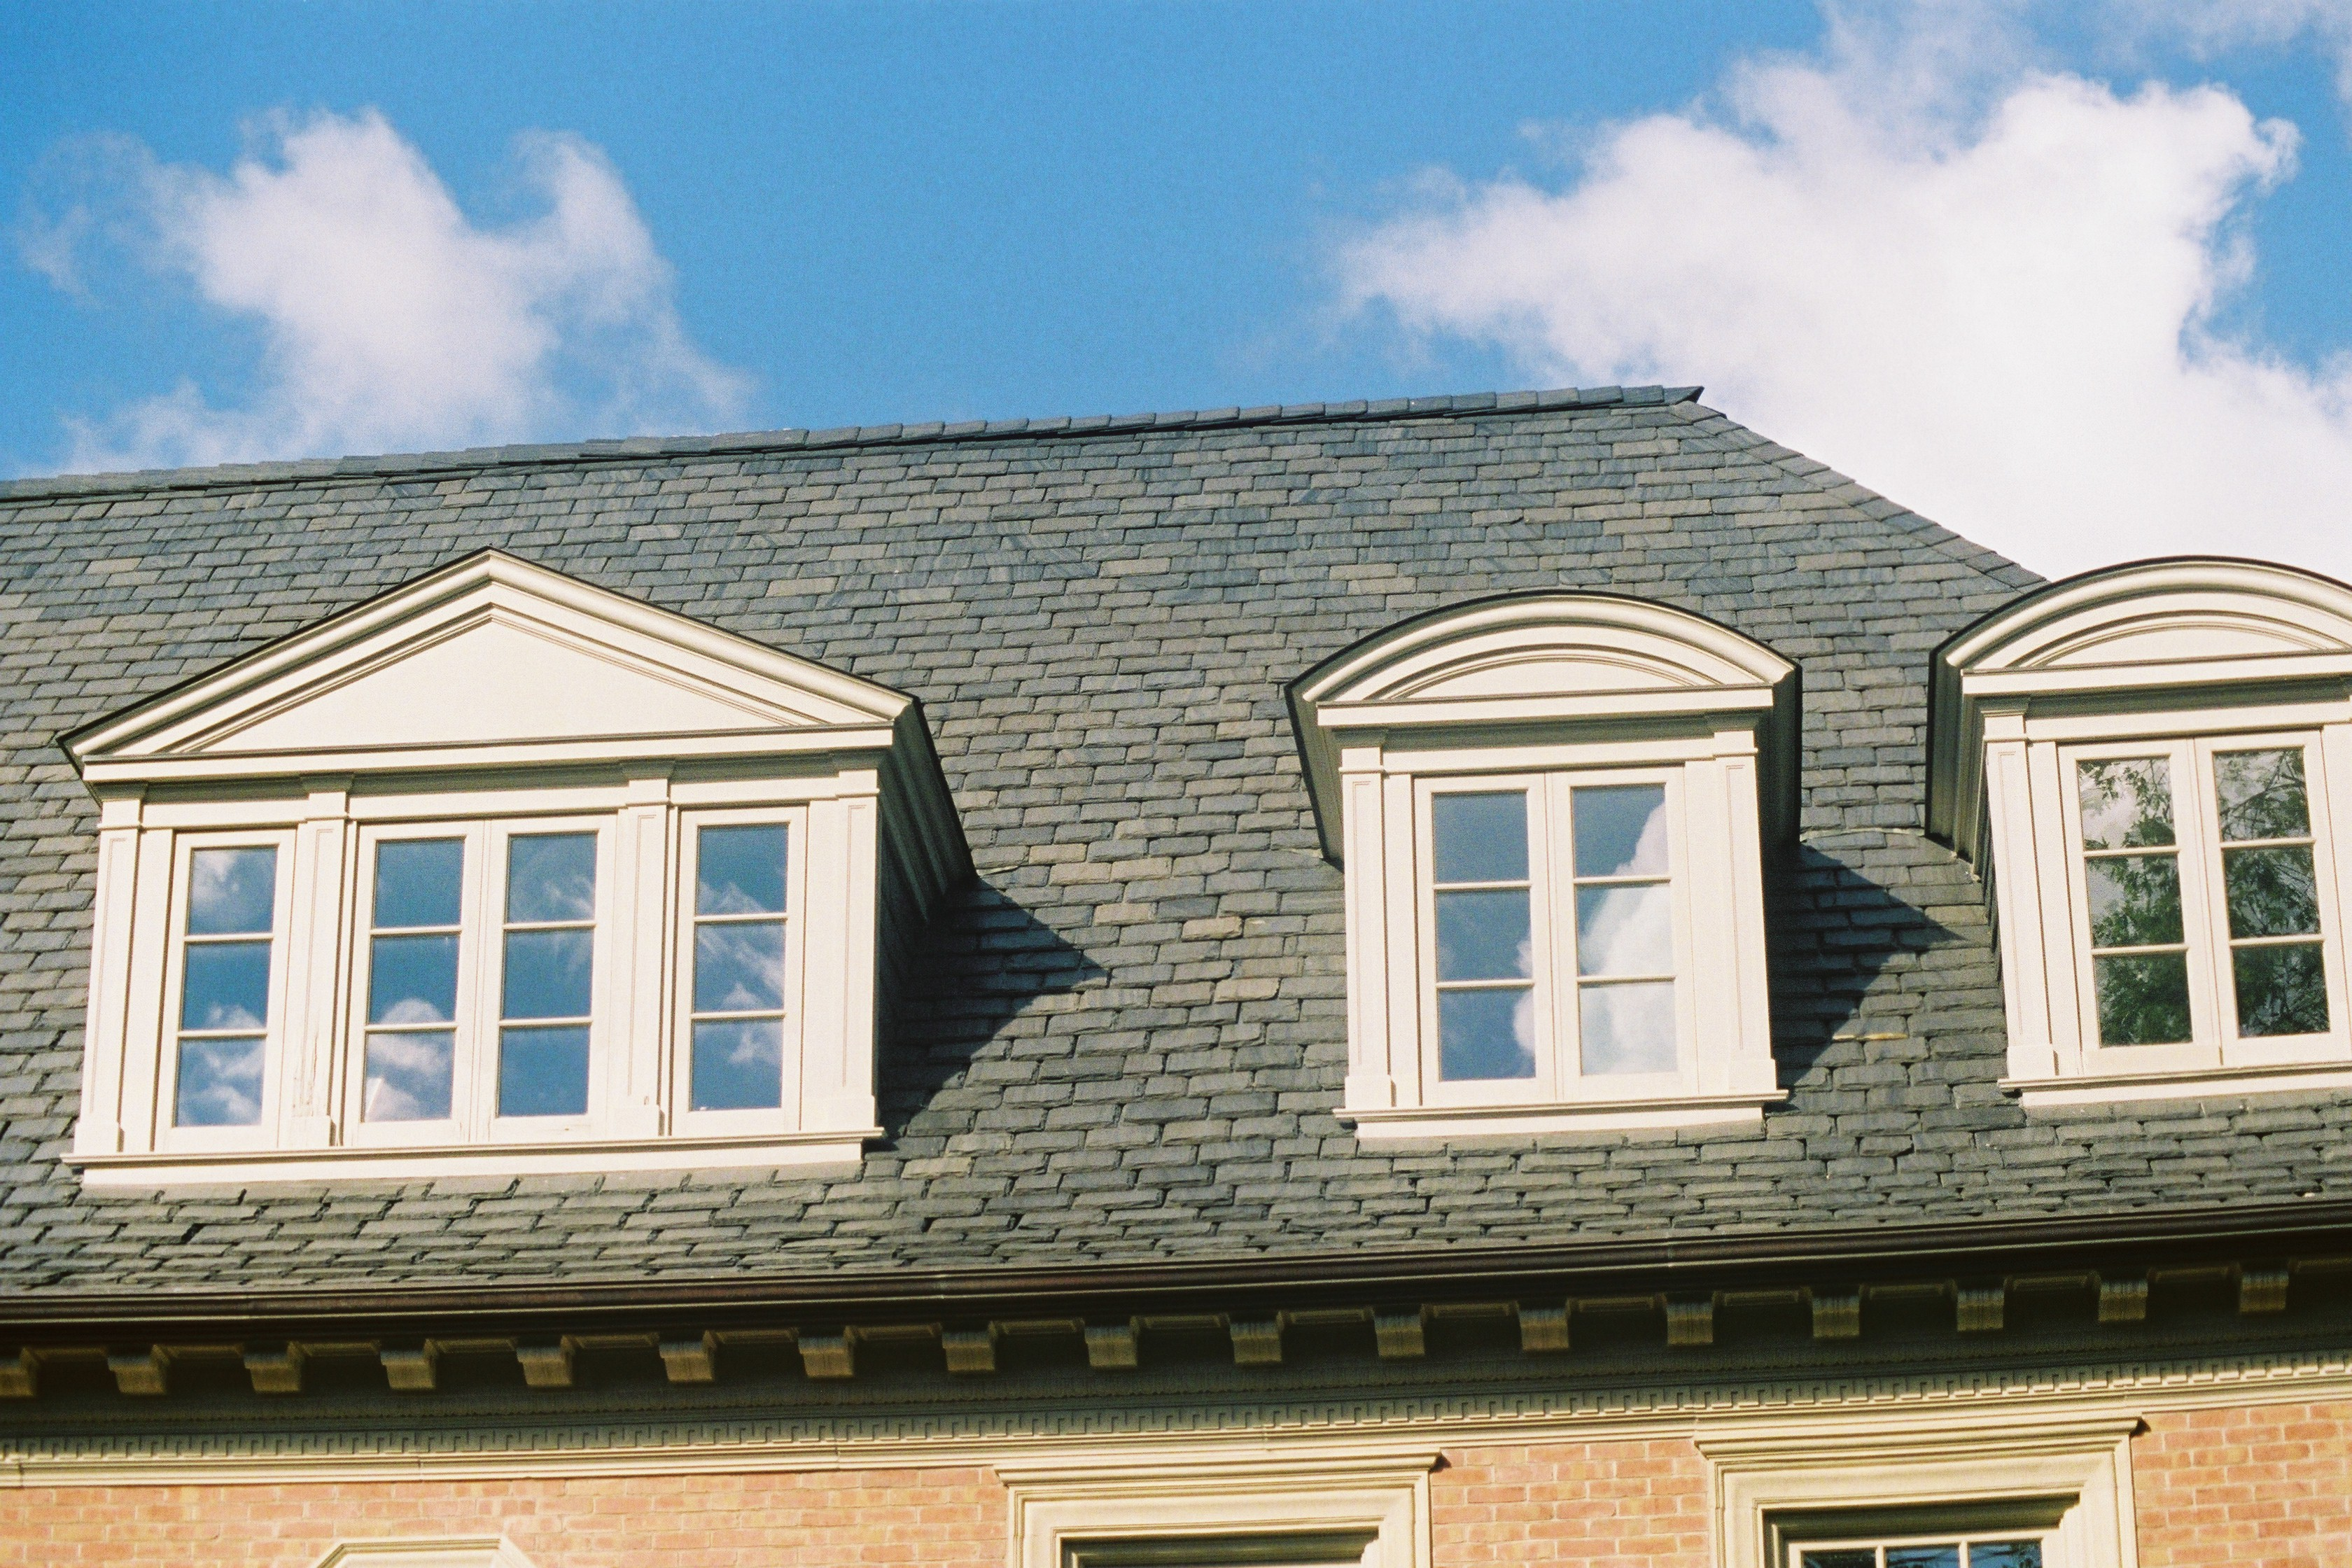 textural slate roofs u2013 the uses of slates of rougher surface textures and thicknesses mixed throughout a roof creates a textural slate roof